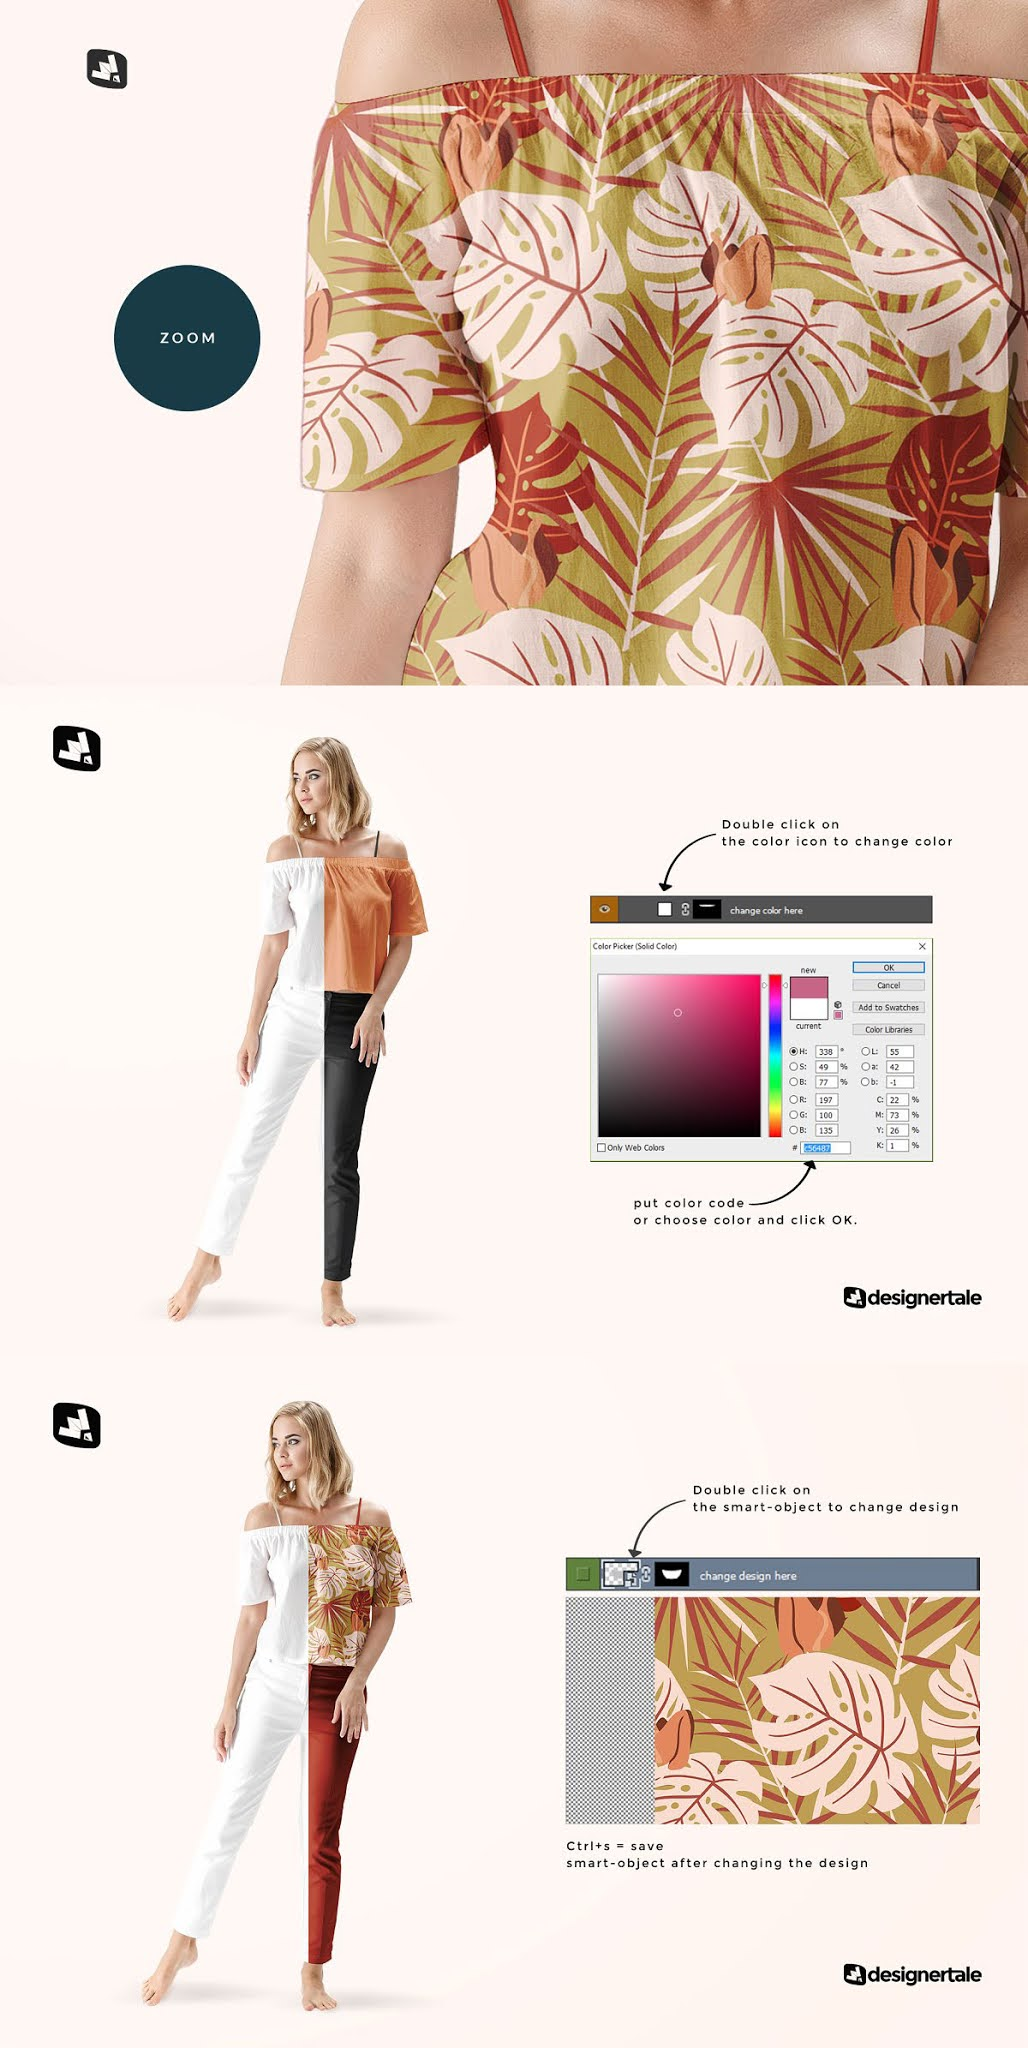 CreativeMarket Female Summer Outfit Mockup 4971813 Download